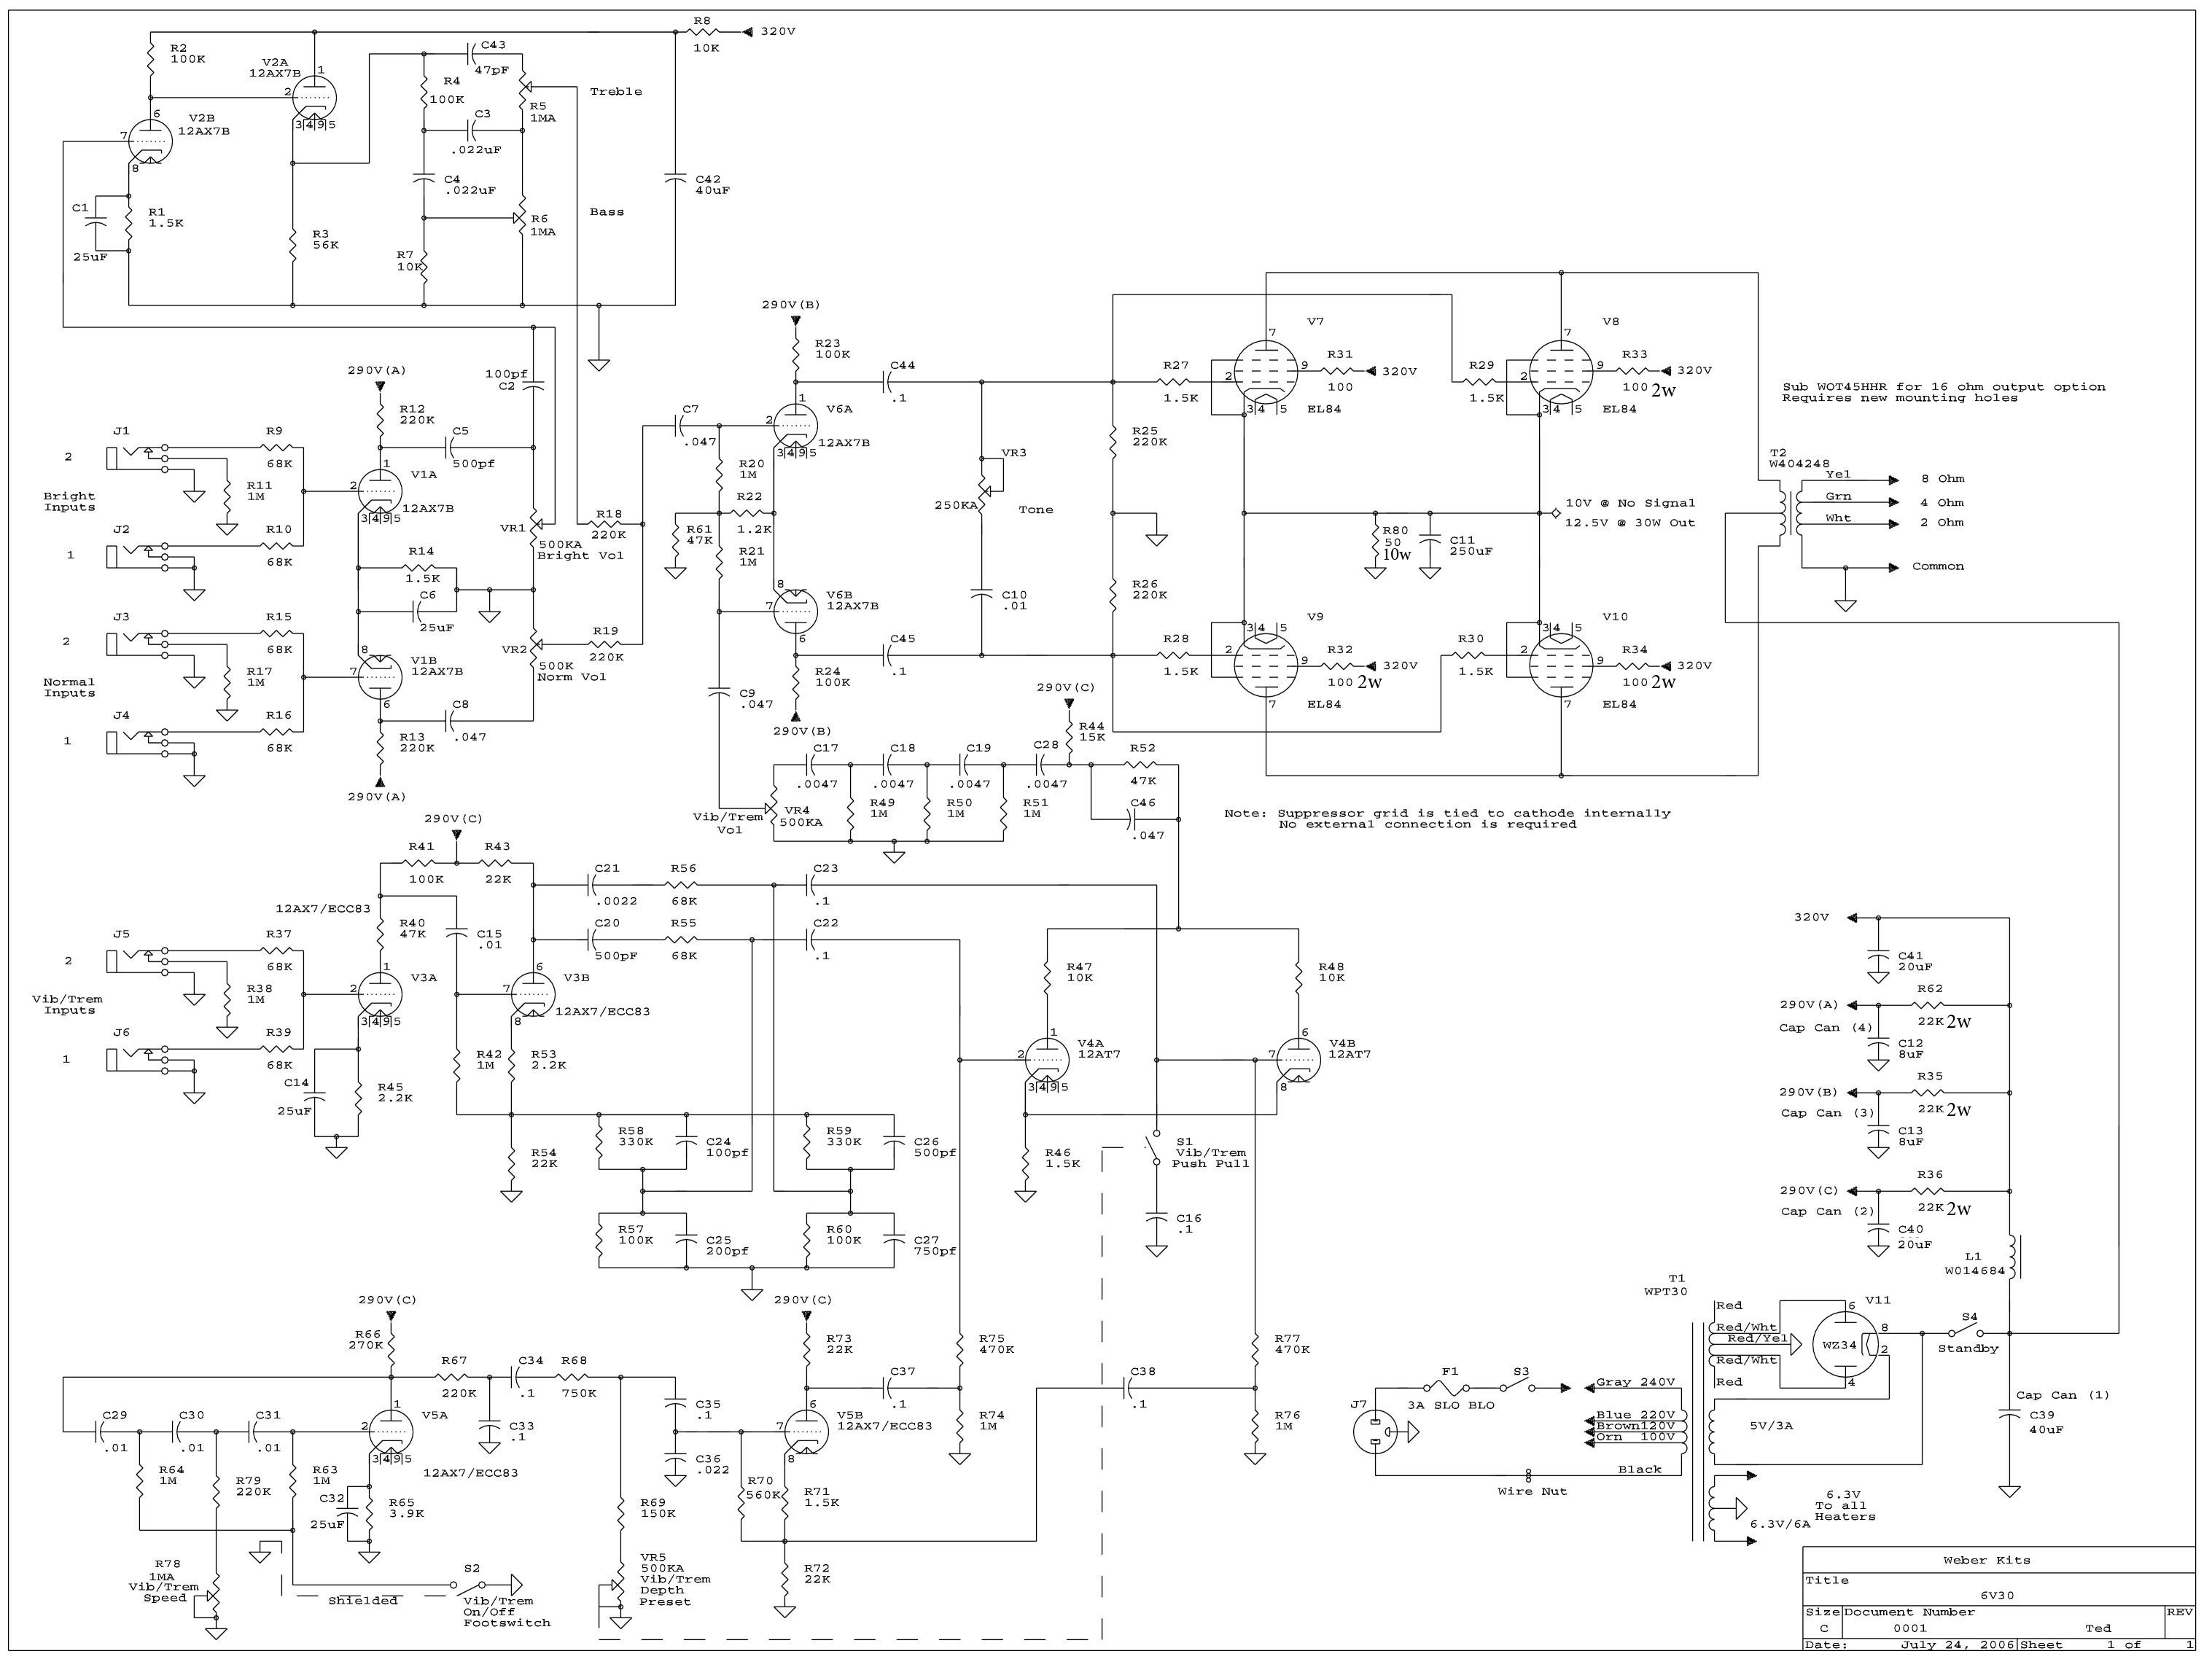 6v30_schem 6v30 amp kit weber ksg 470 wiring diagrams at crackthecode.co